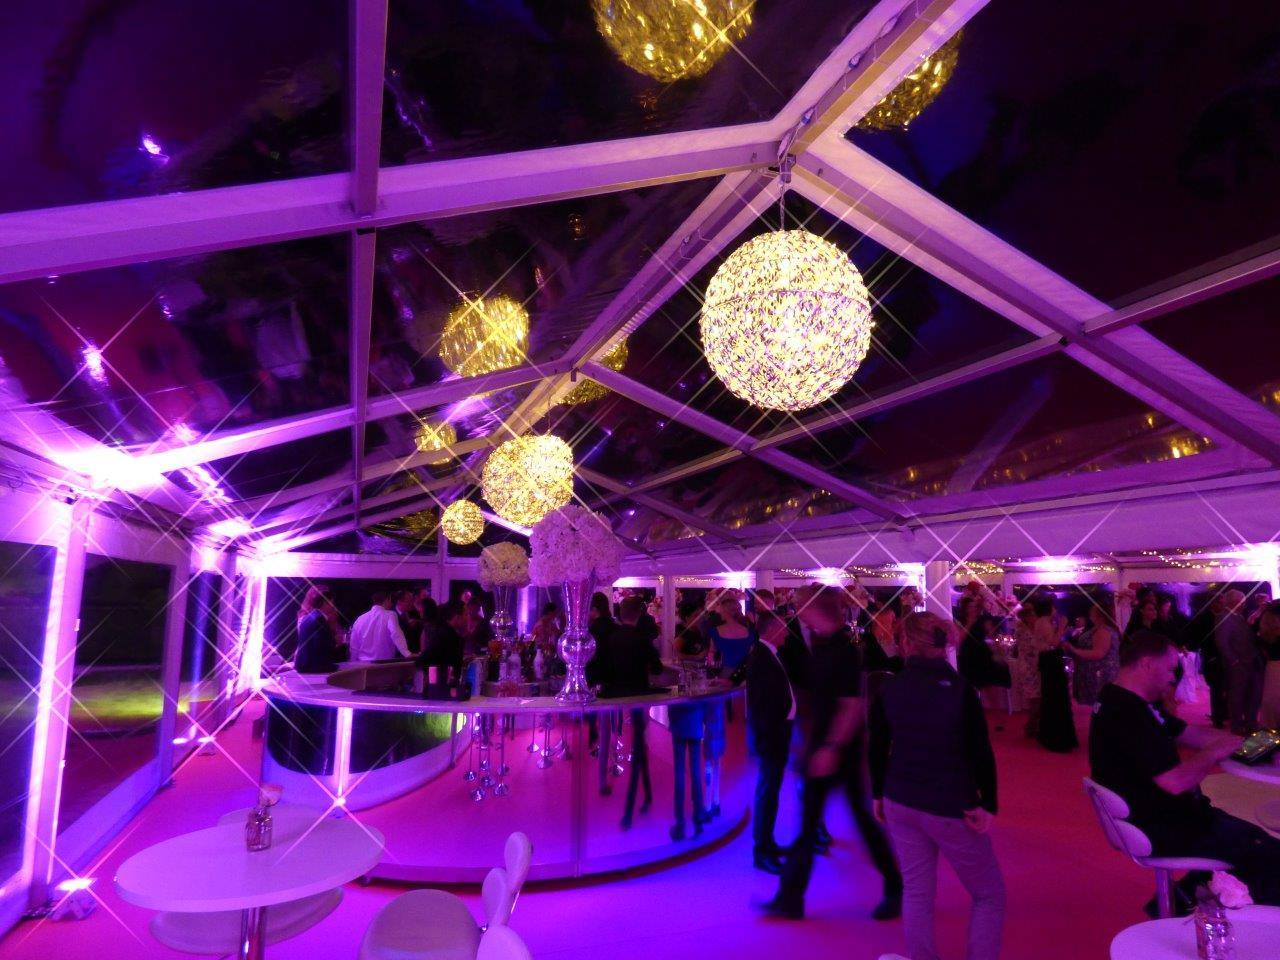 Party Marquee Hire Essex, Beautiful open roof Marquee Hire, Stunning Decoration.